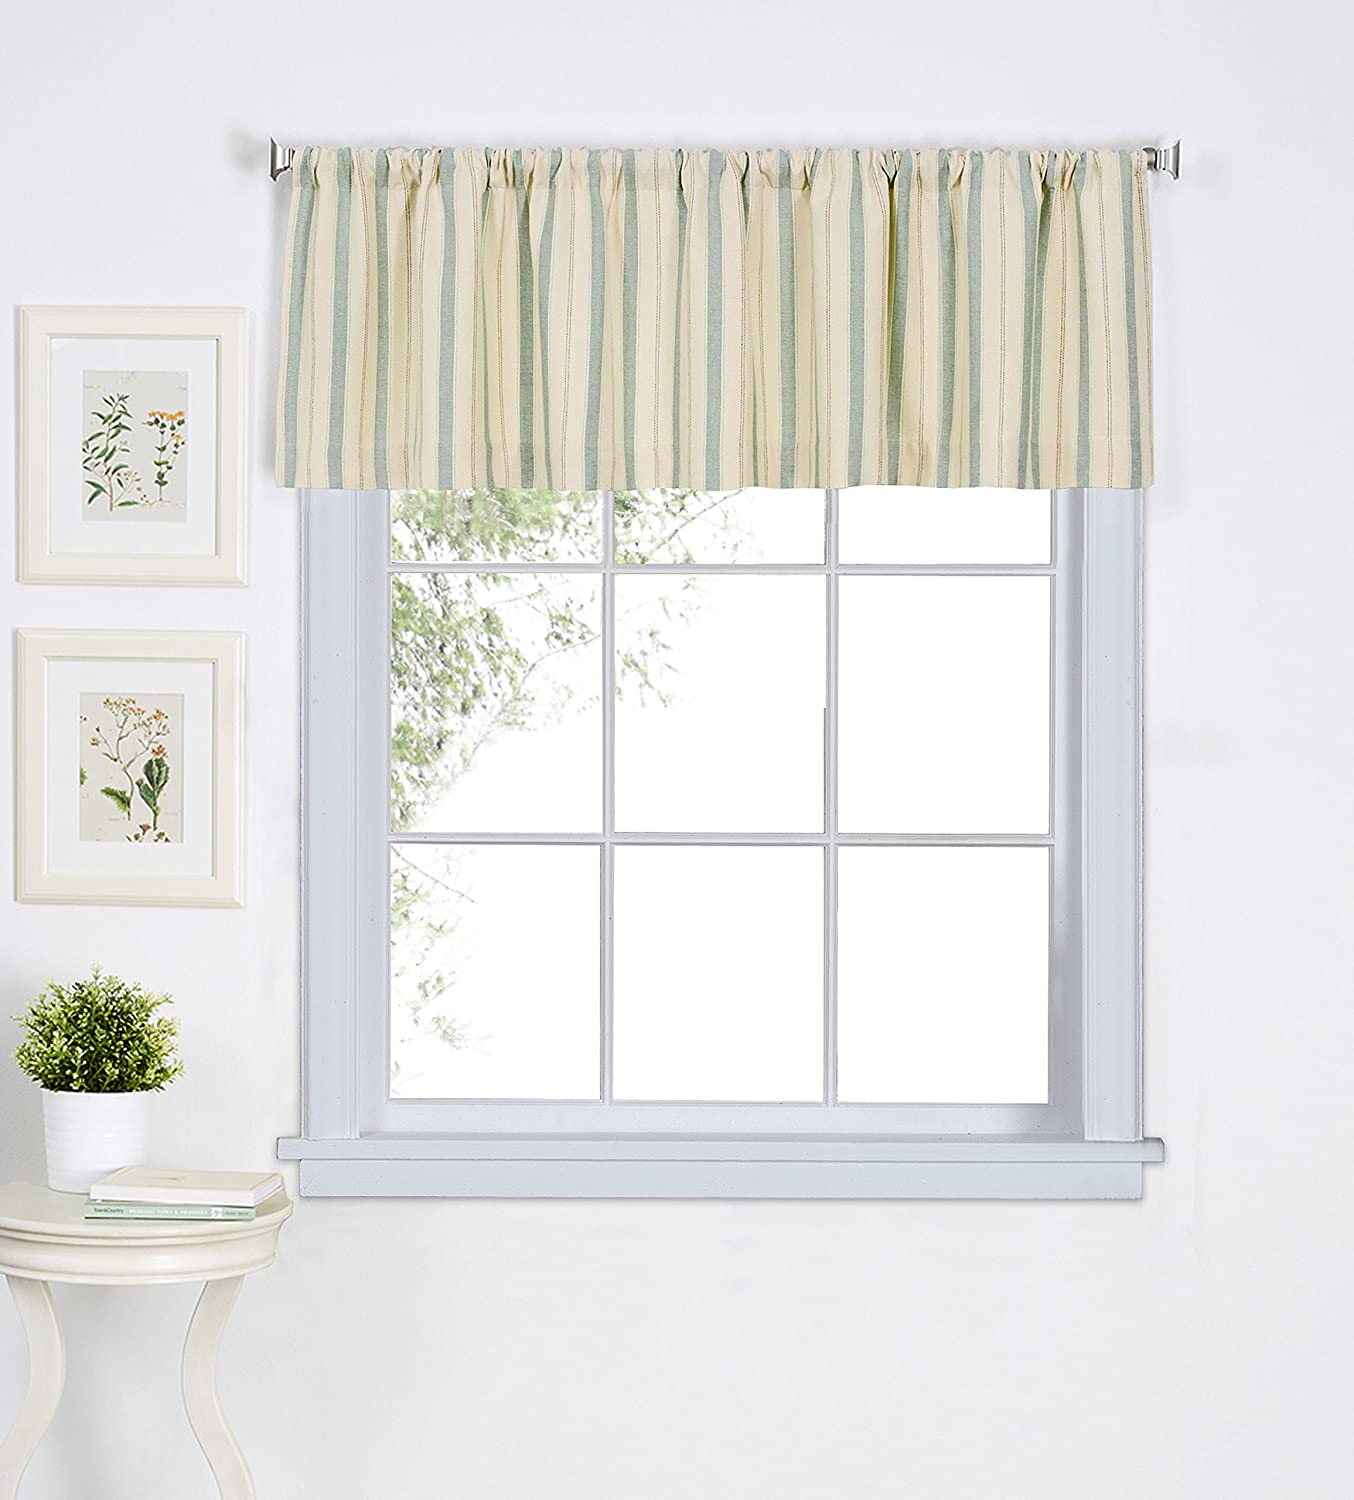 Elrene Home Fashions 026865775693 Rod Pocket Stripe Cafe/Kitchen Valance Window Curtain, 60